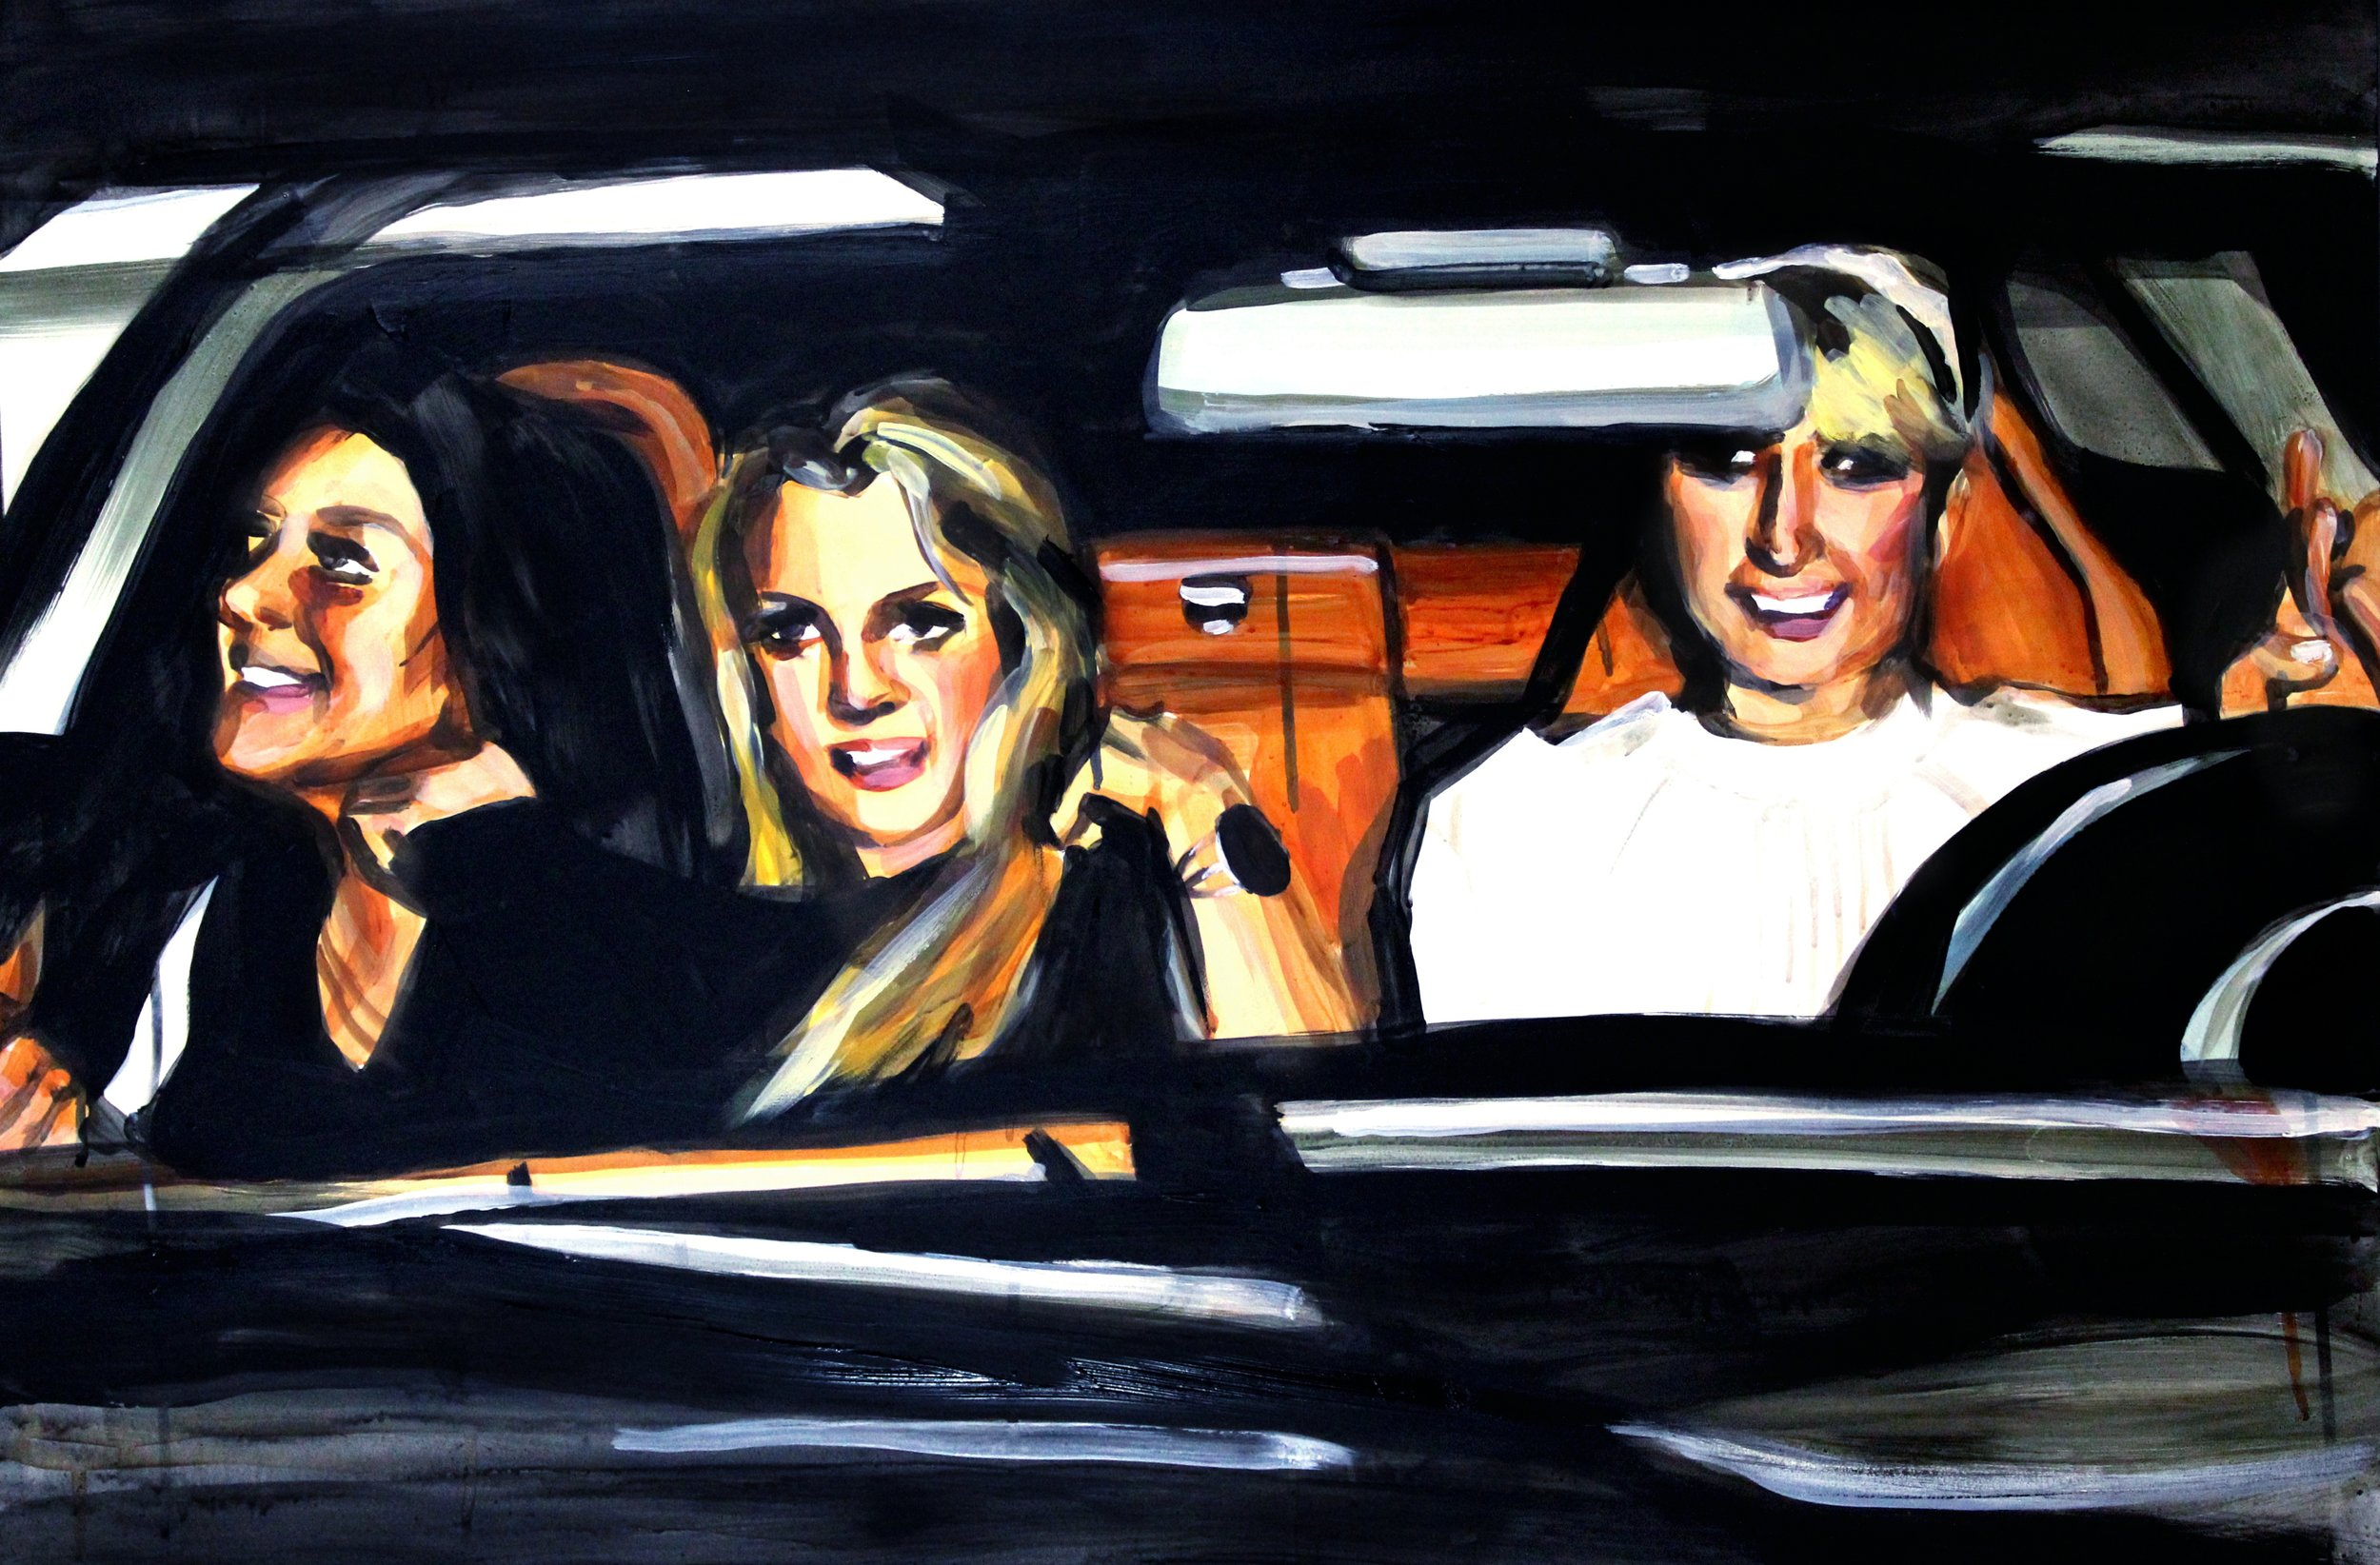 "Lindsay Lohan Britney Spears and Paris Hilton in a Car   24"" x 36"" acrylic on panel   SOLD"